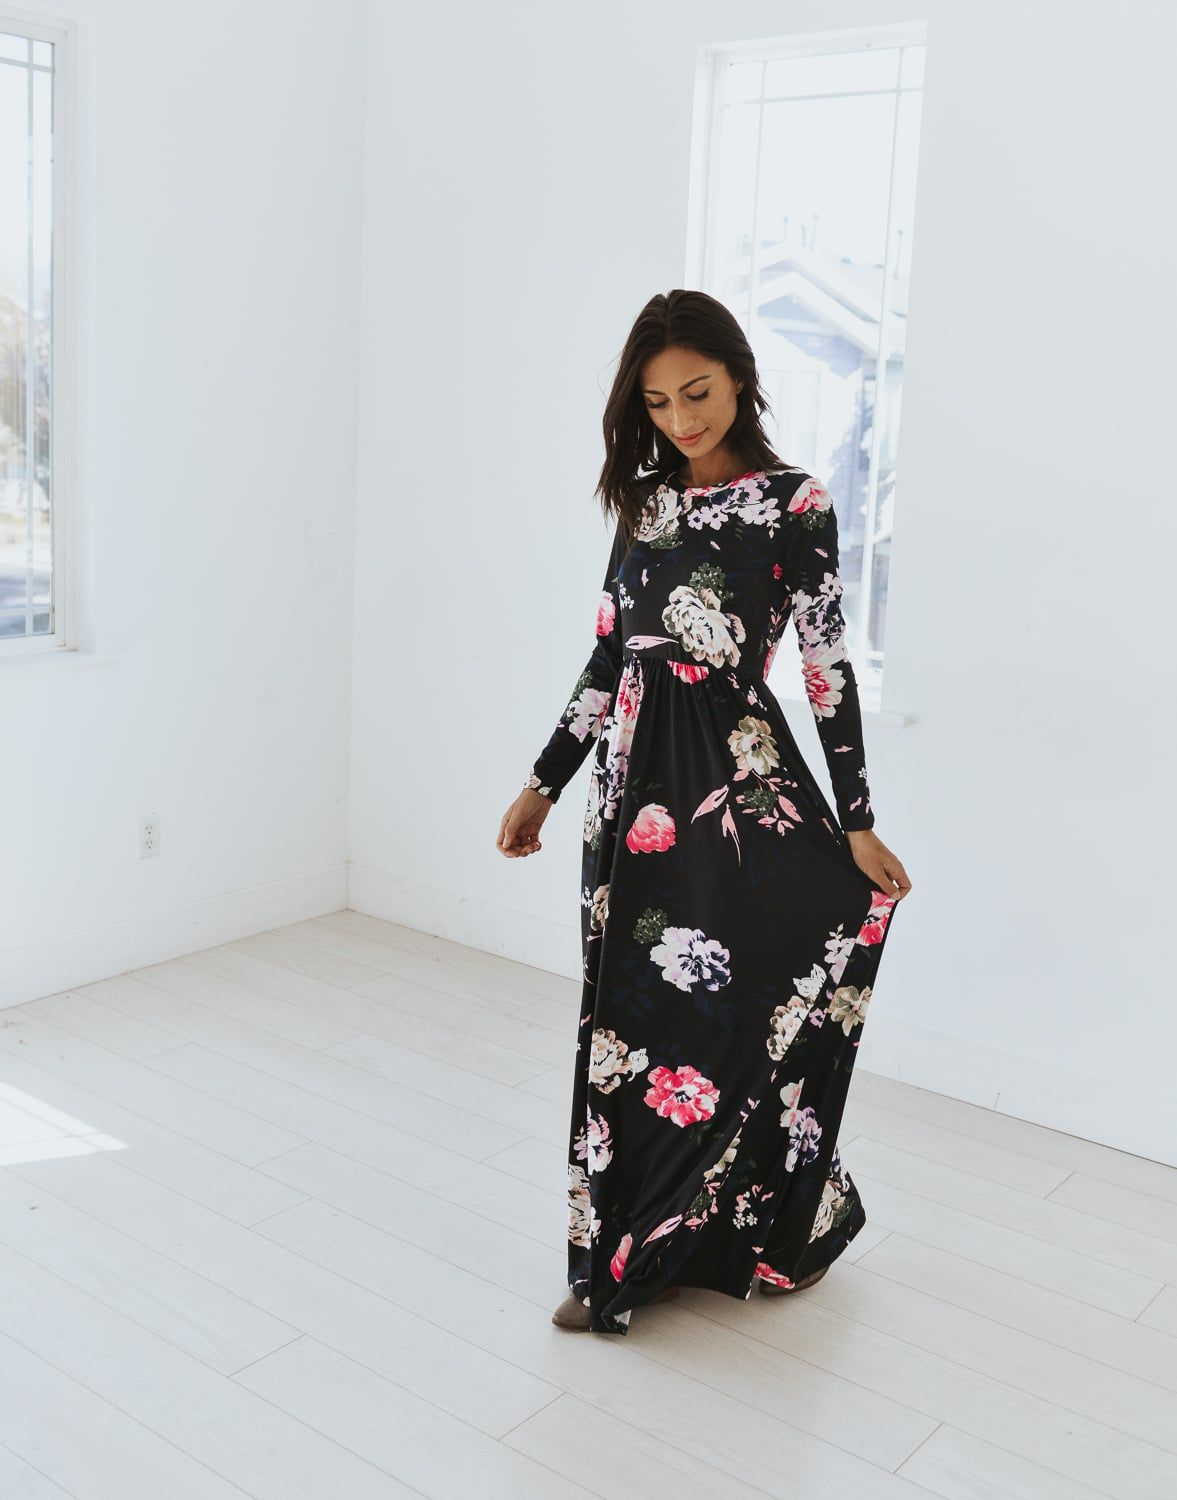 b23edbf72c191 Wear for life's Journey in 2019 | Journey Five | Floral Style ...